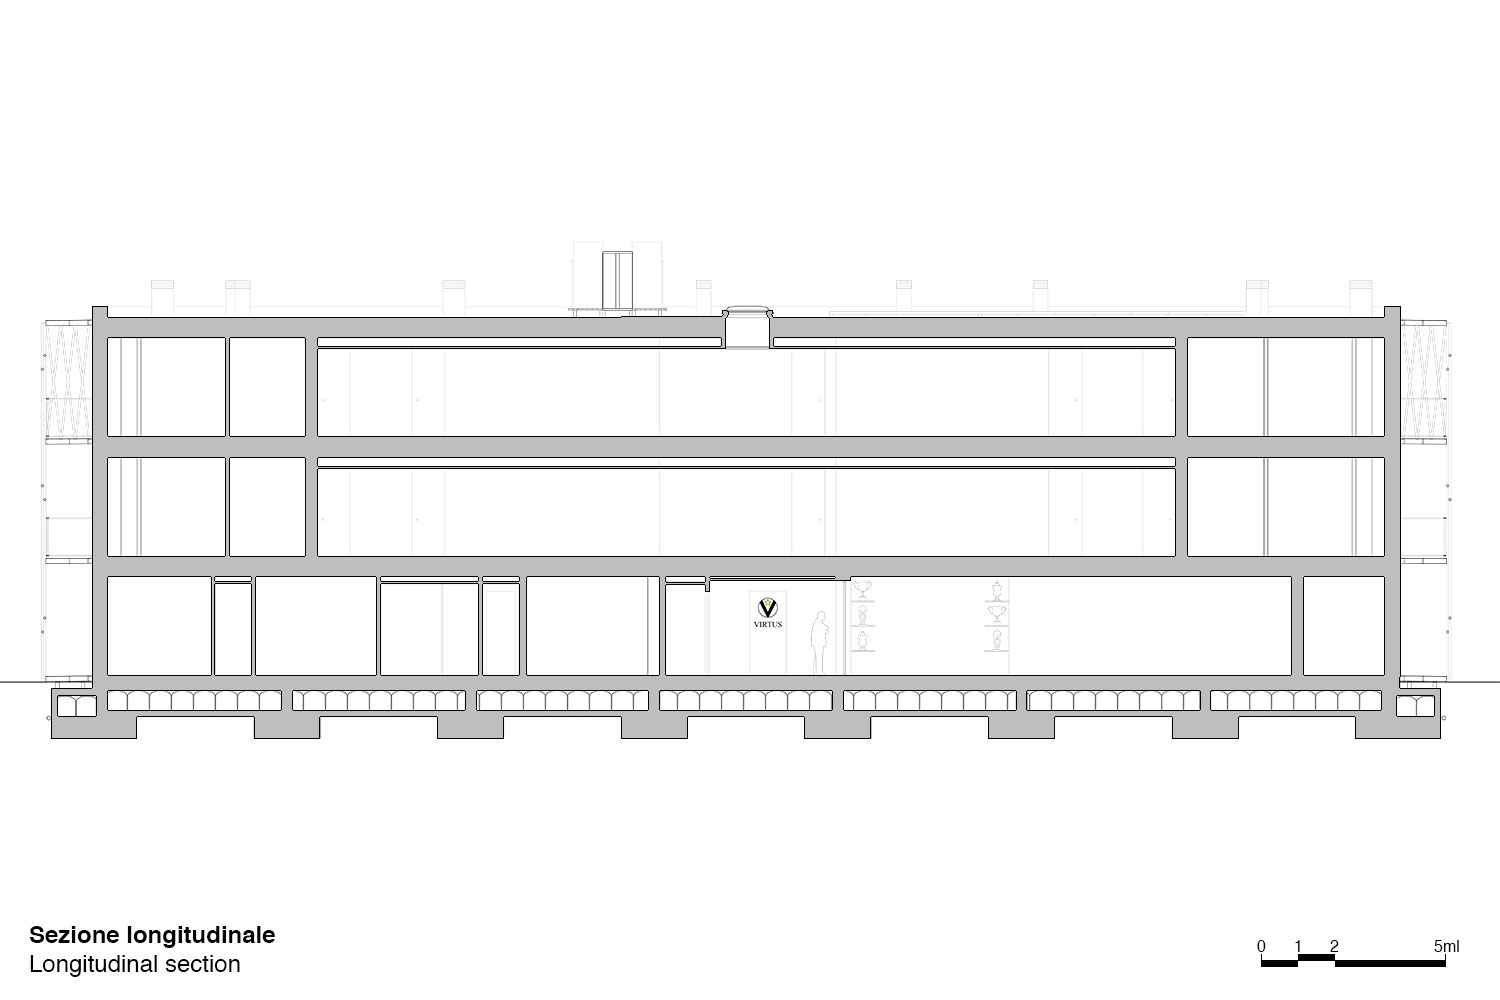 Longitudinal Section Antonio Iascone & Partners}